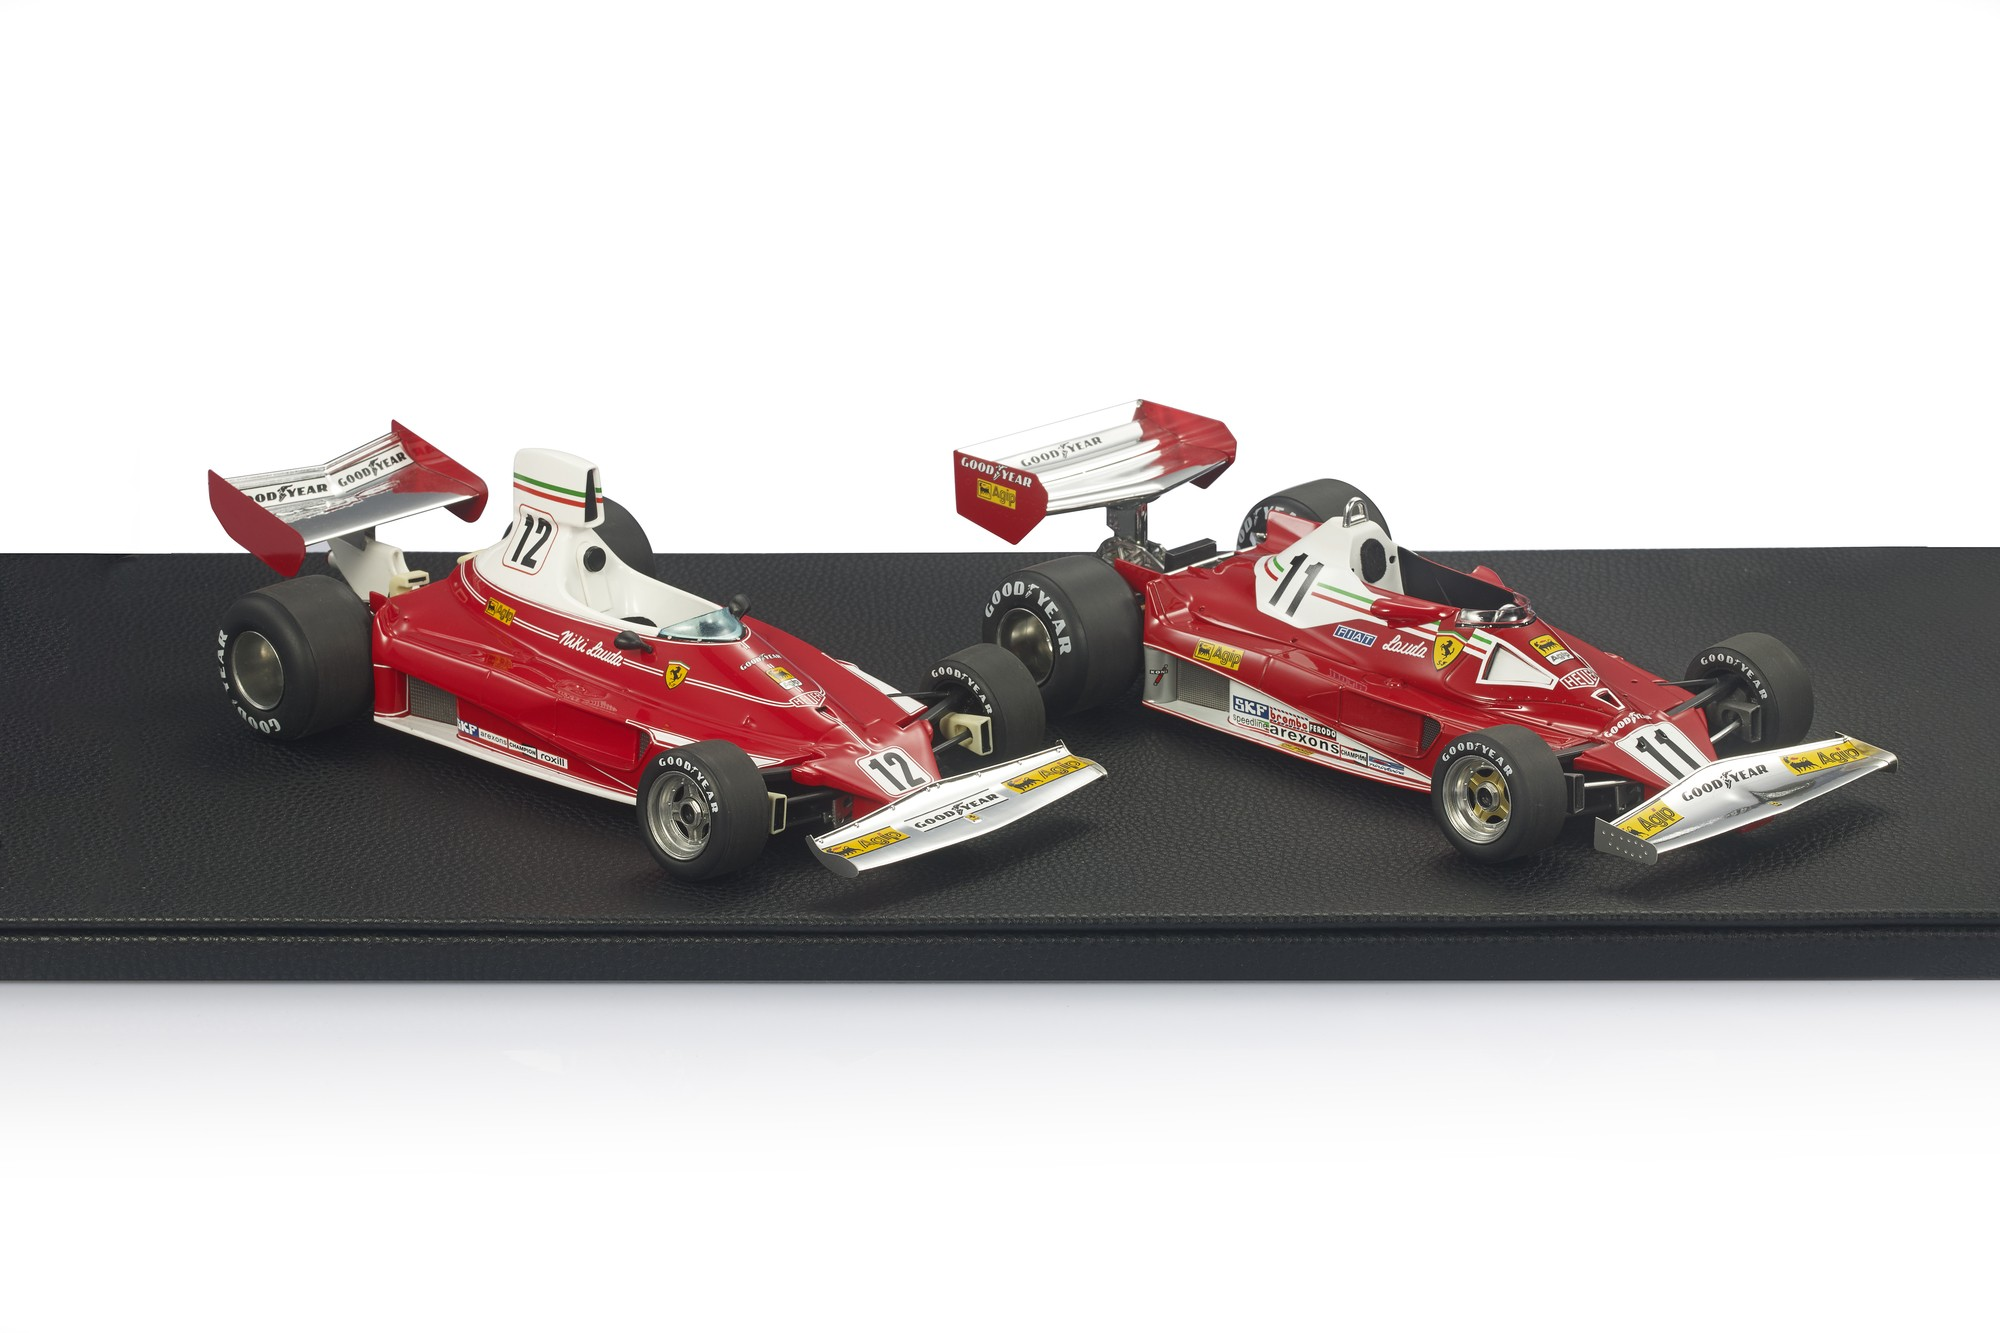 Ferrari Niki Lauda World Champion Set